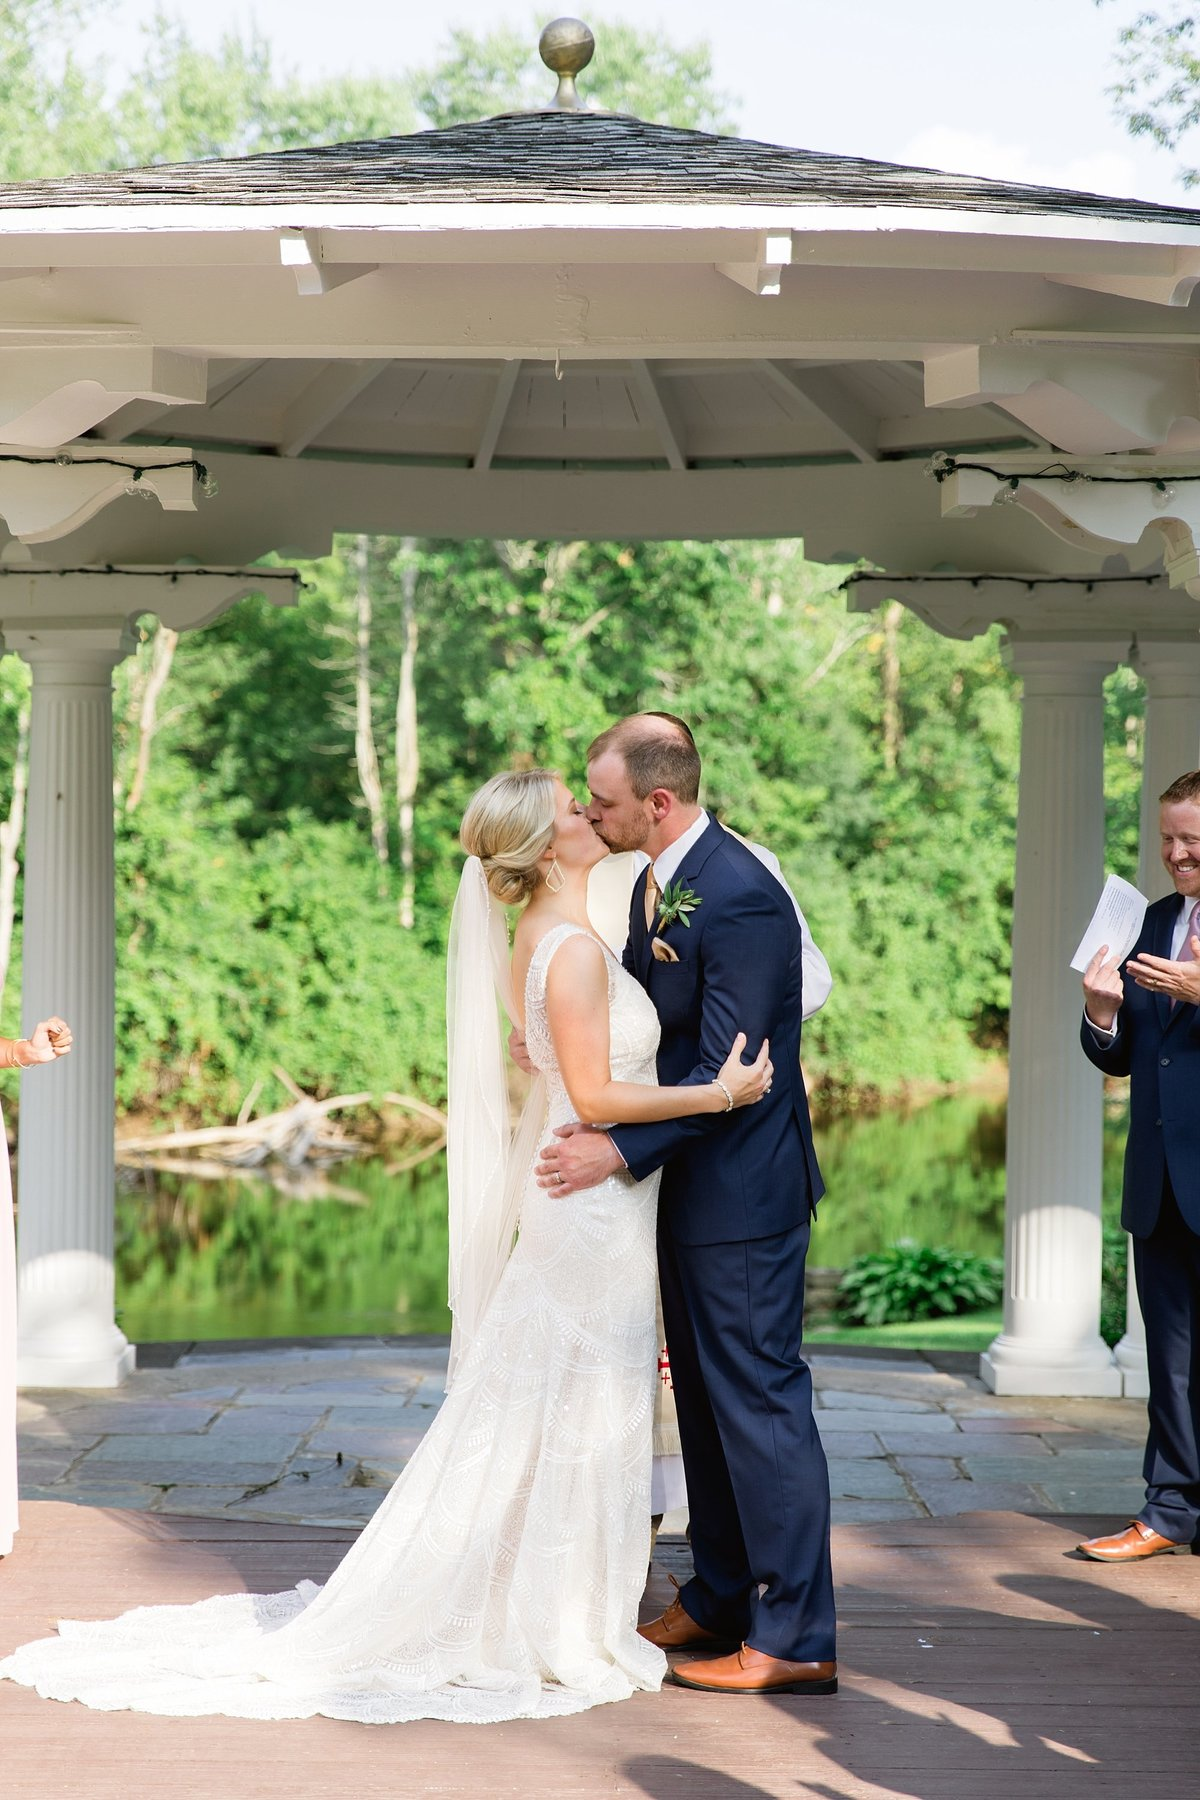 Julie-Barry-English-Inn-Summer-Garden-Wedding-Michigan-Breanne-Rochelle-Photography62